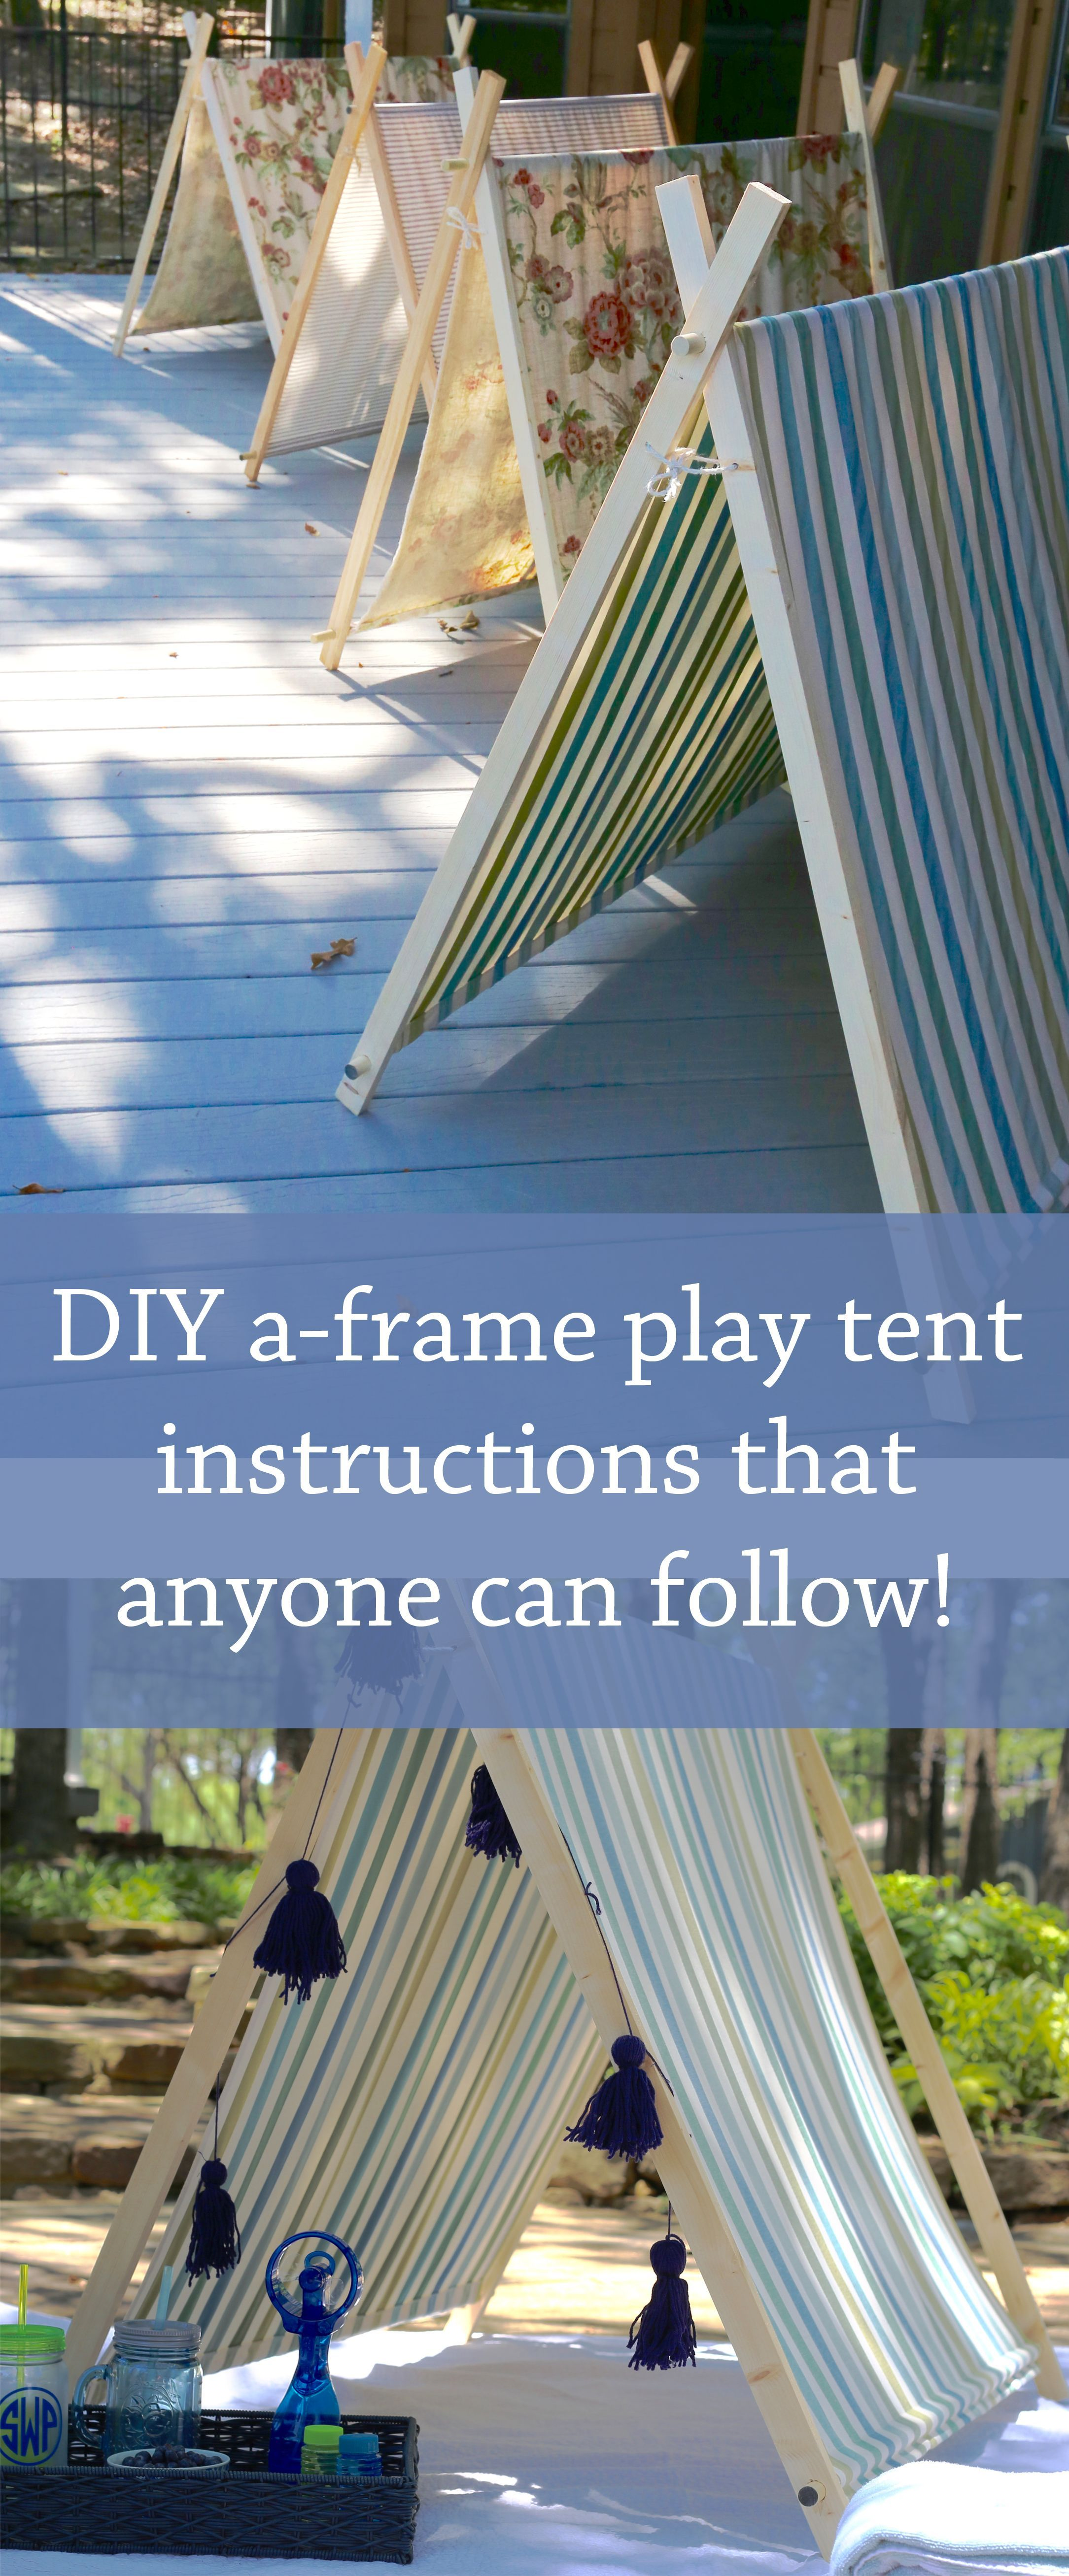 DIY aframe play tent instructions from